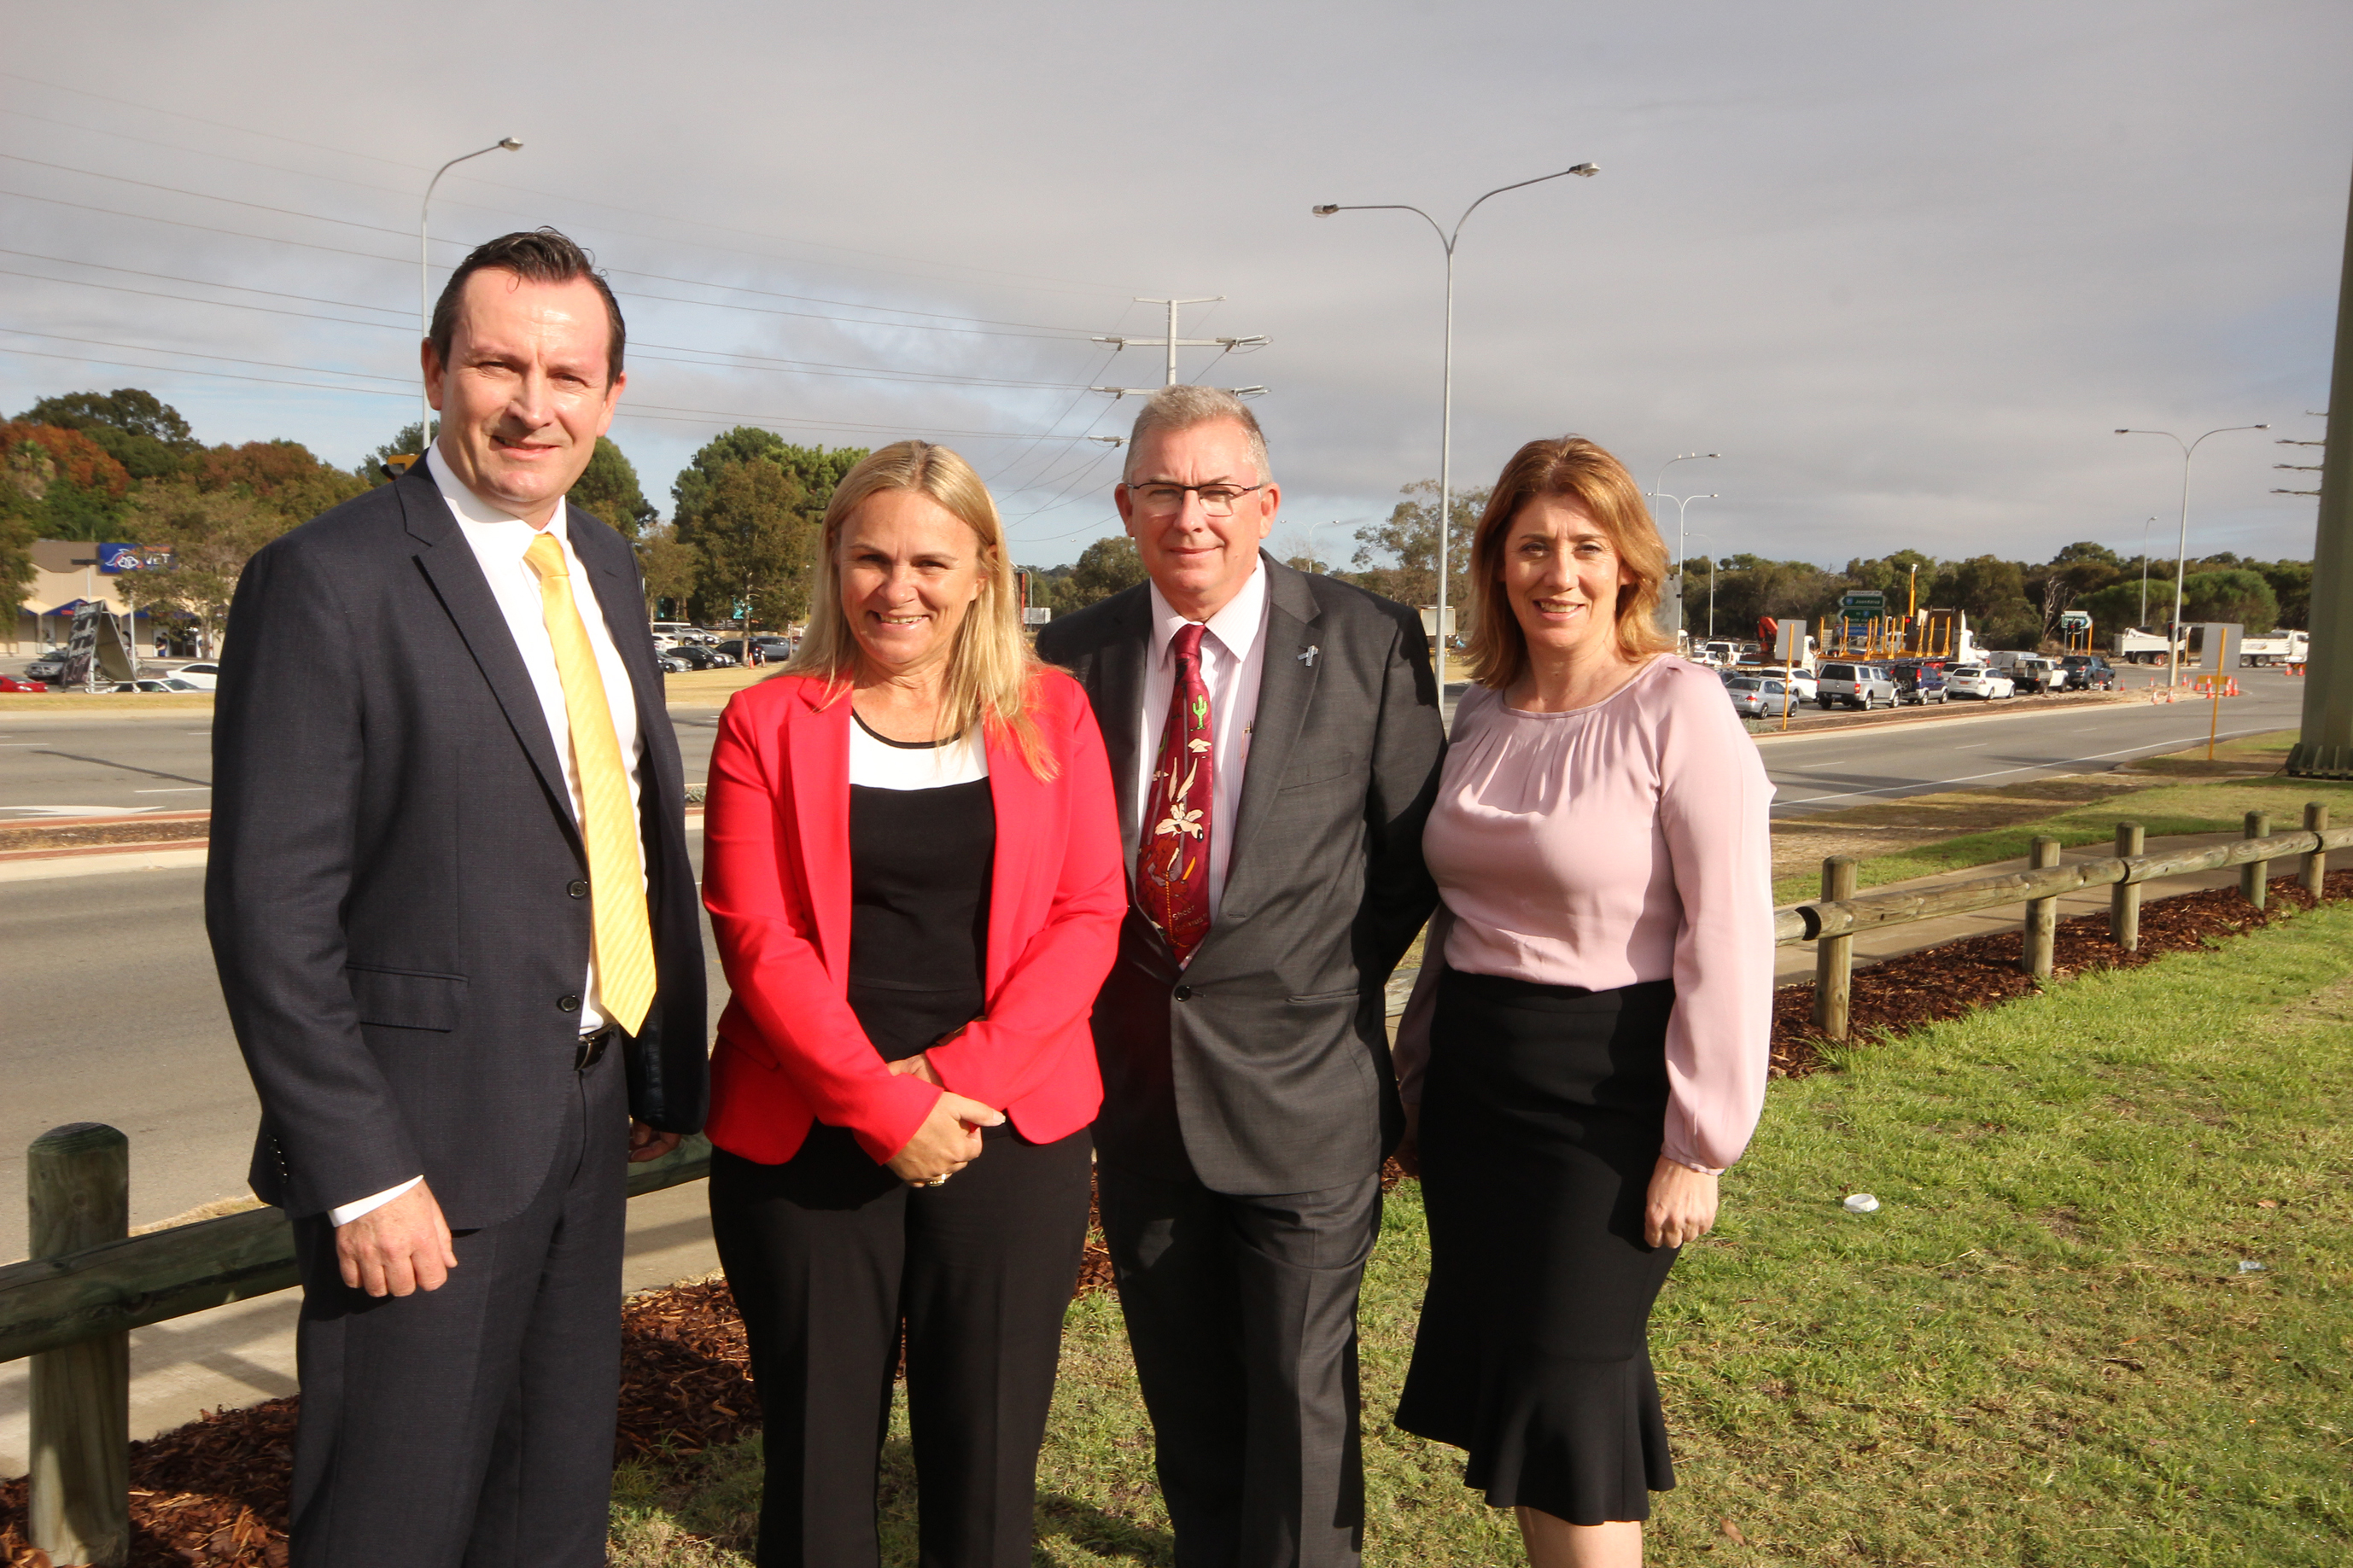 From left: Premier Mark McGowan, Wanneroo MLA Sabine Winton, Burns Beach MLA Mark Folkard, Transport Minister Rita Saffioti. Photo: Lucy Jarvis